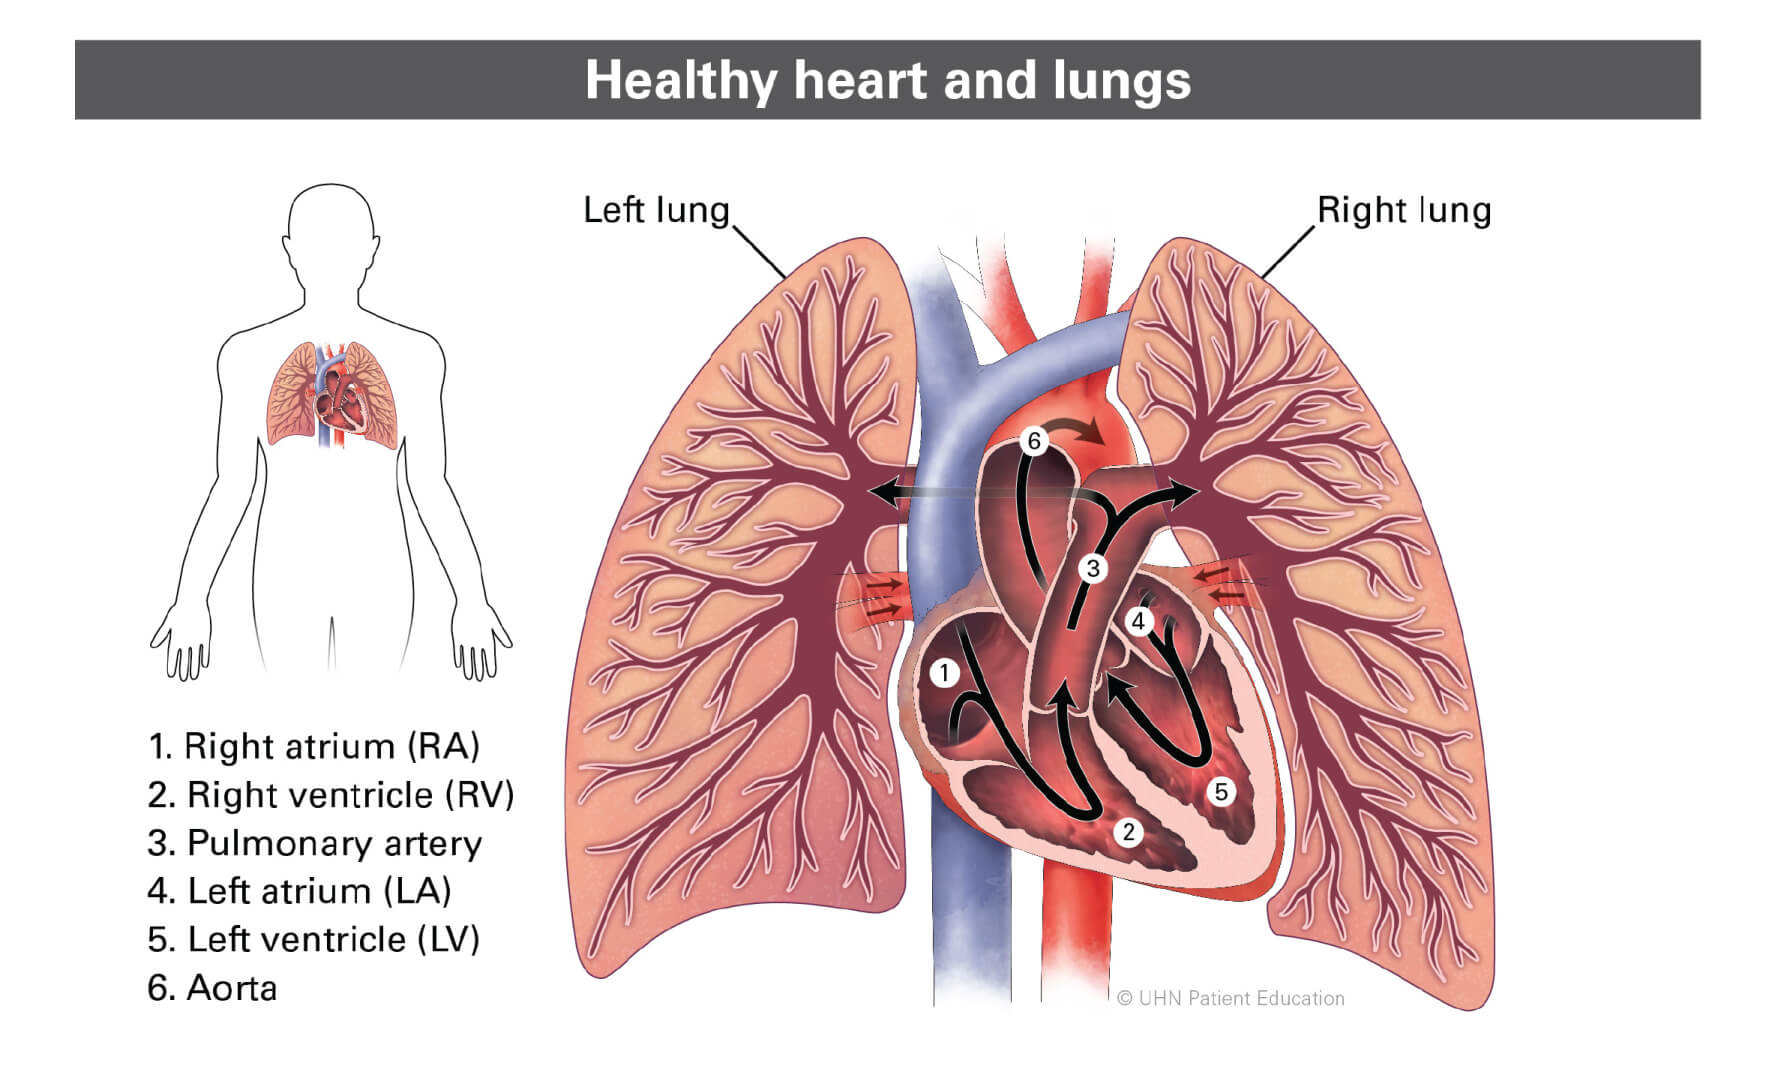 Diagram of heart and lungs pointing to each part; right and left lungs, Right Atrium, Left Atrium, Right Ventricle, and Left Ventricle